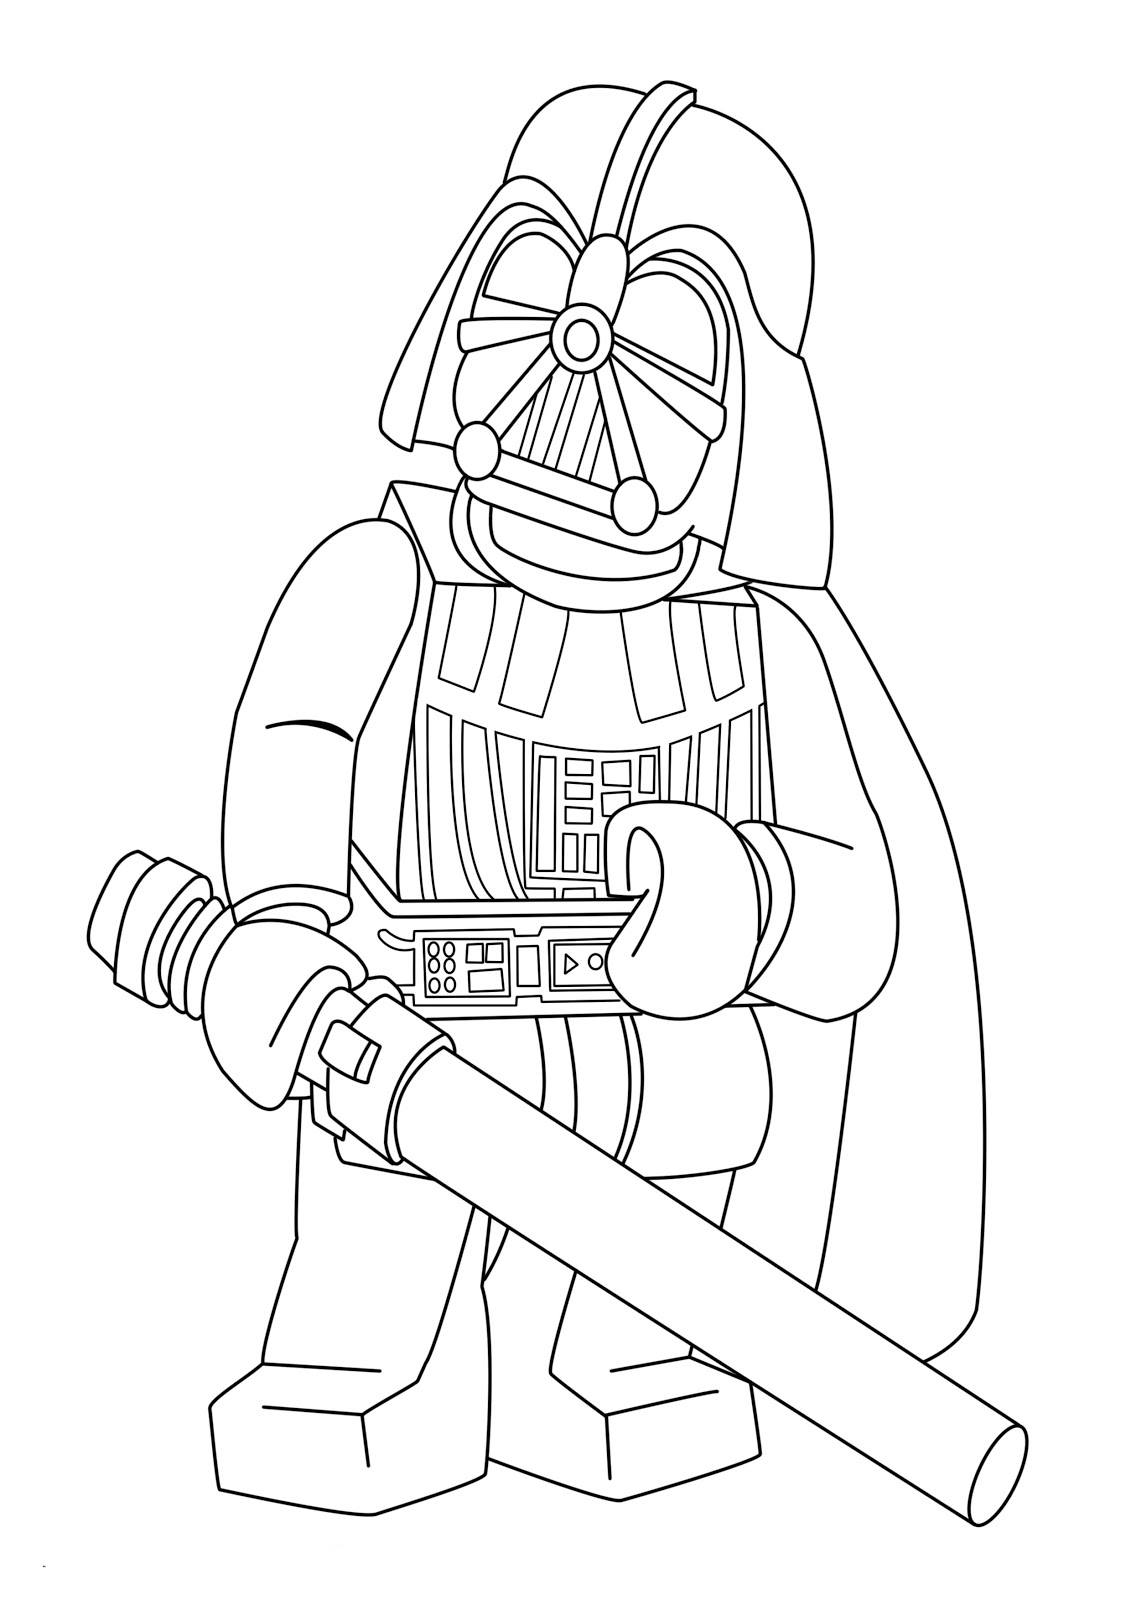 lego coloring pages free lego star wars coloring pages best coloring pages for kids free lego pages coloring